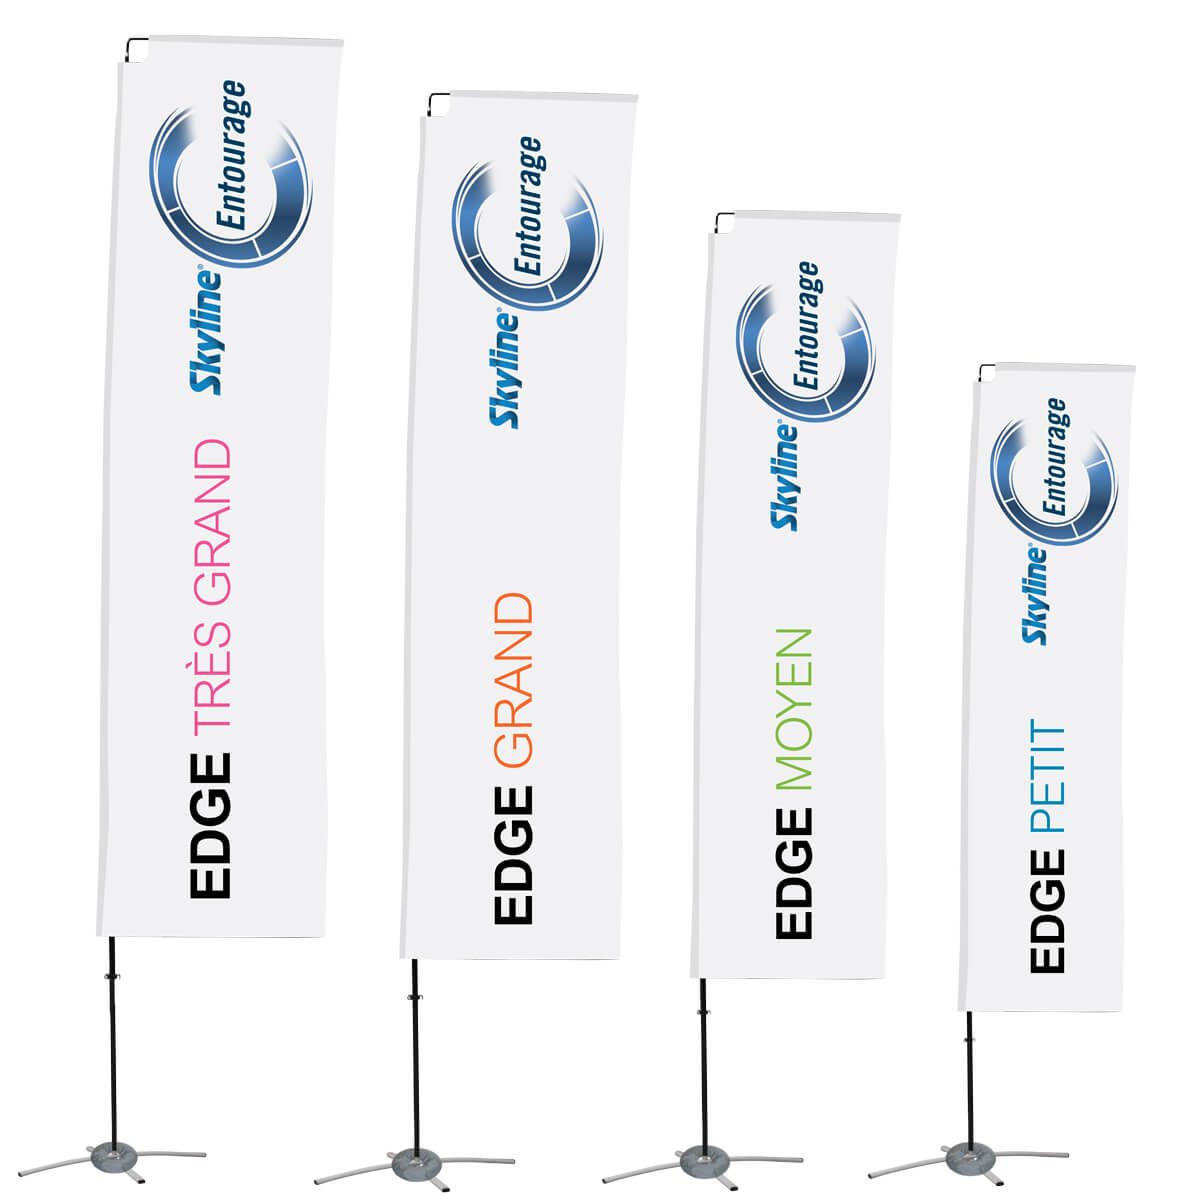 flags-Edge-4-sizes-EN